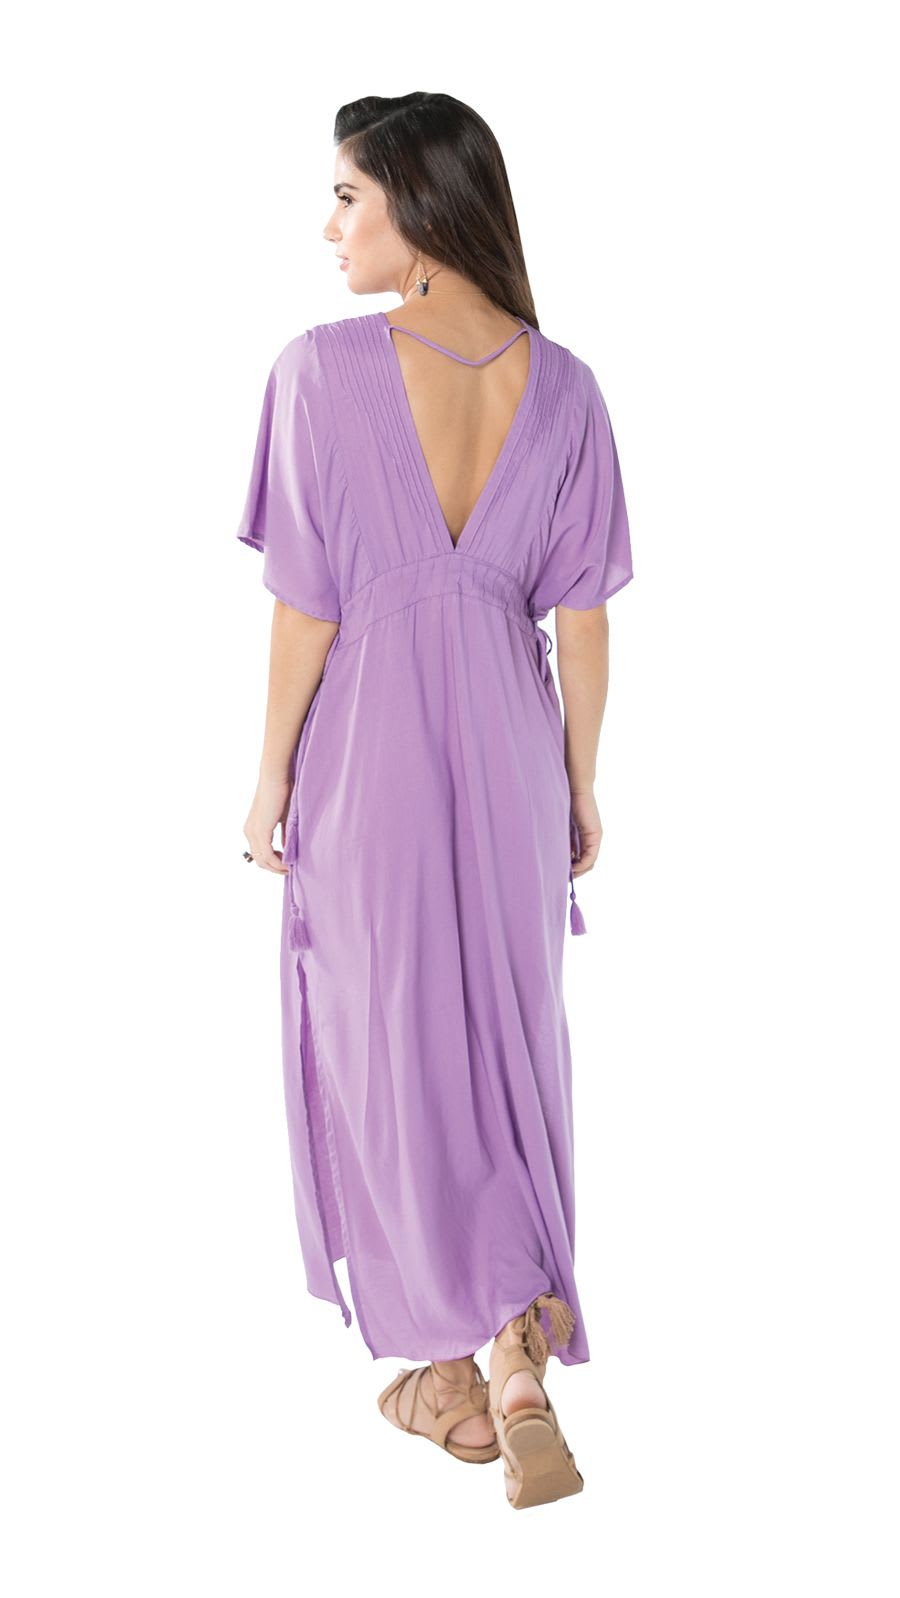 Bisous Tunic - Lilac - Back